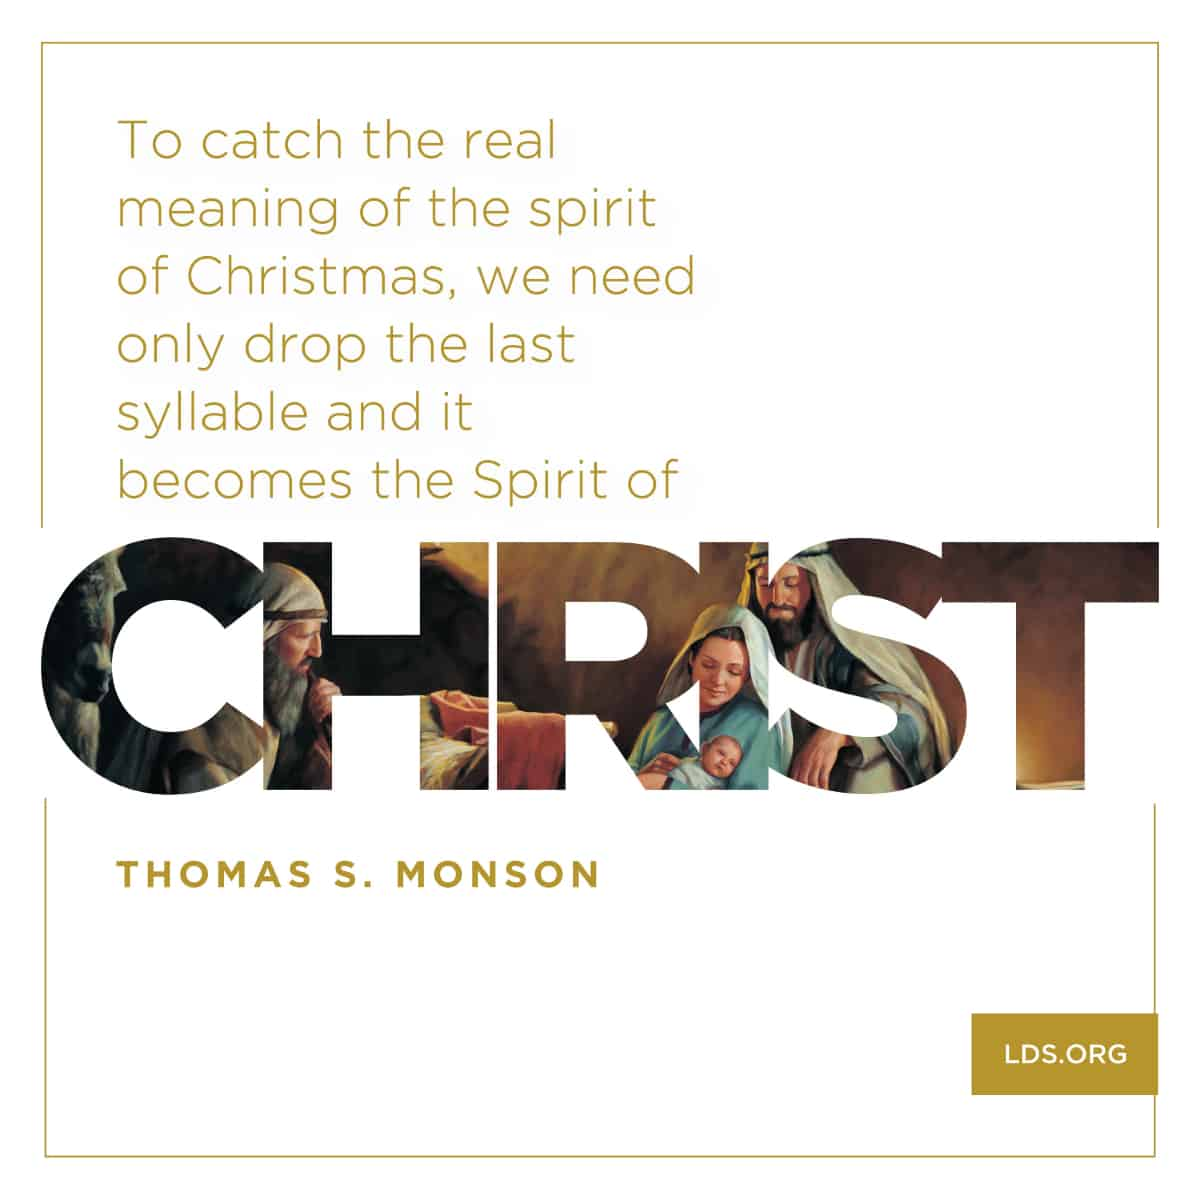 The real meaning of the spirit of Christmas